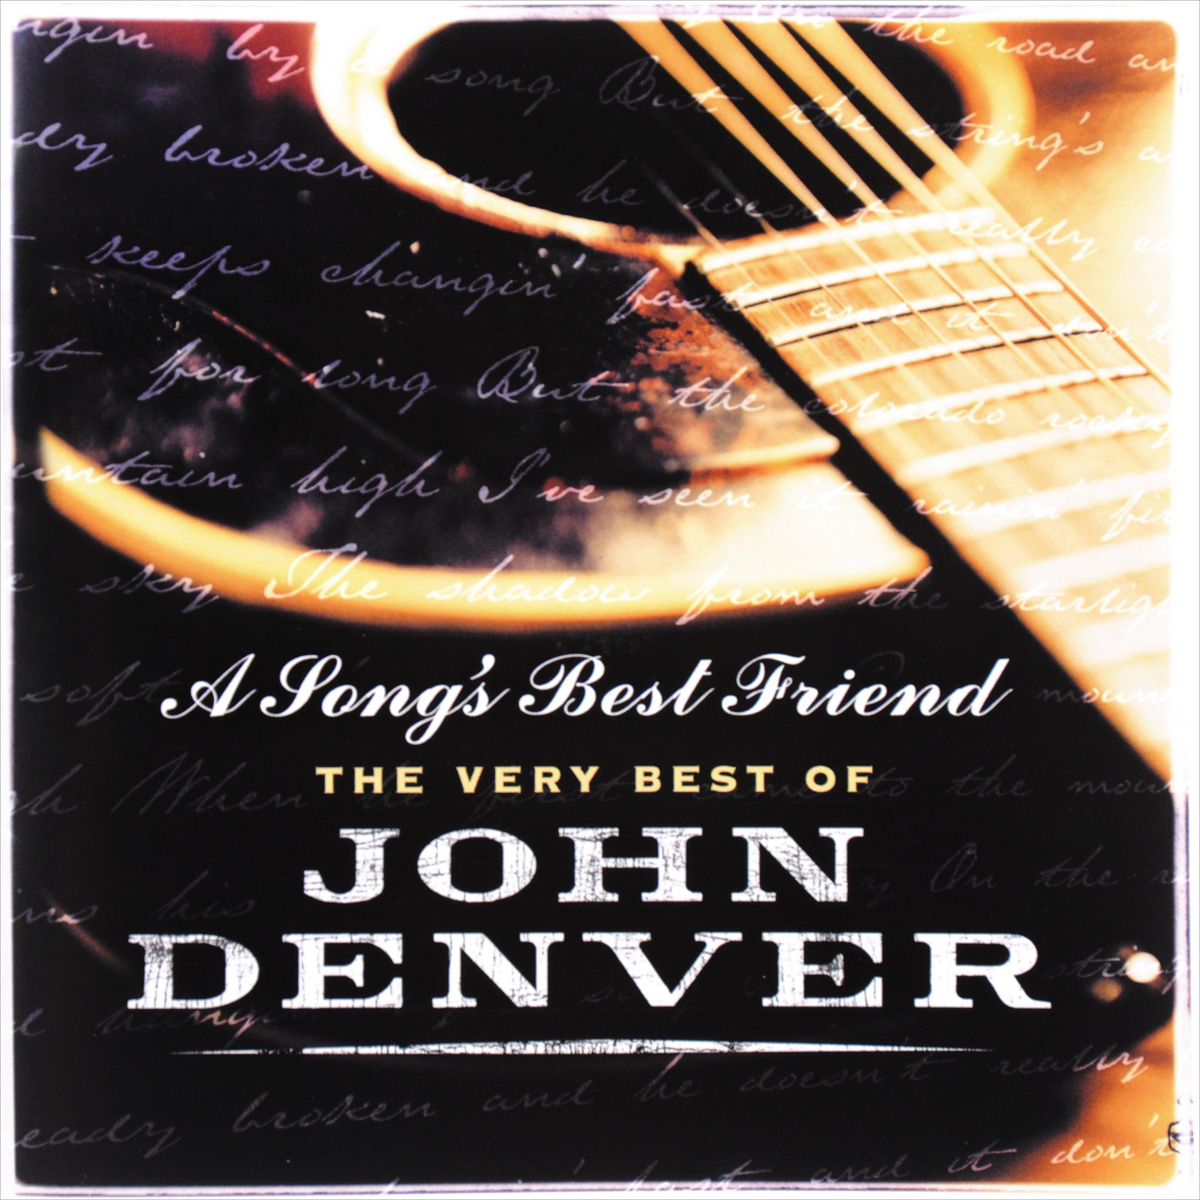 Джон Дэнвер John Denver. A Song's Best Friend. The Very Best Of (2 CD) cd диск jeff healey the very best of 1 cd